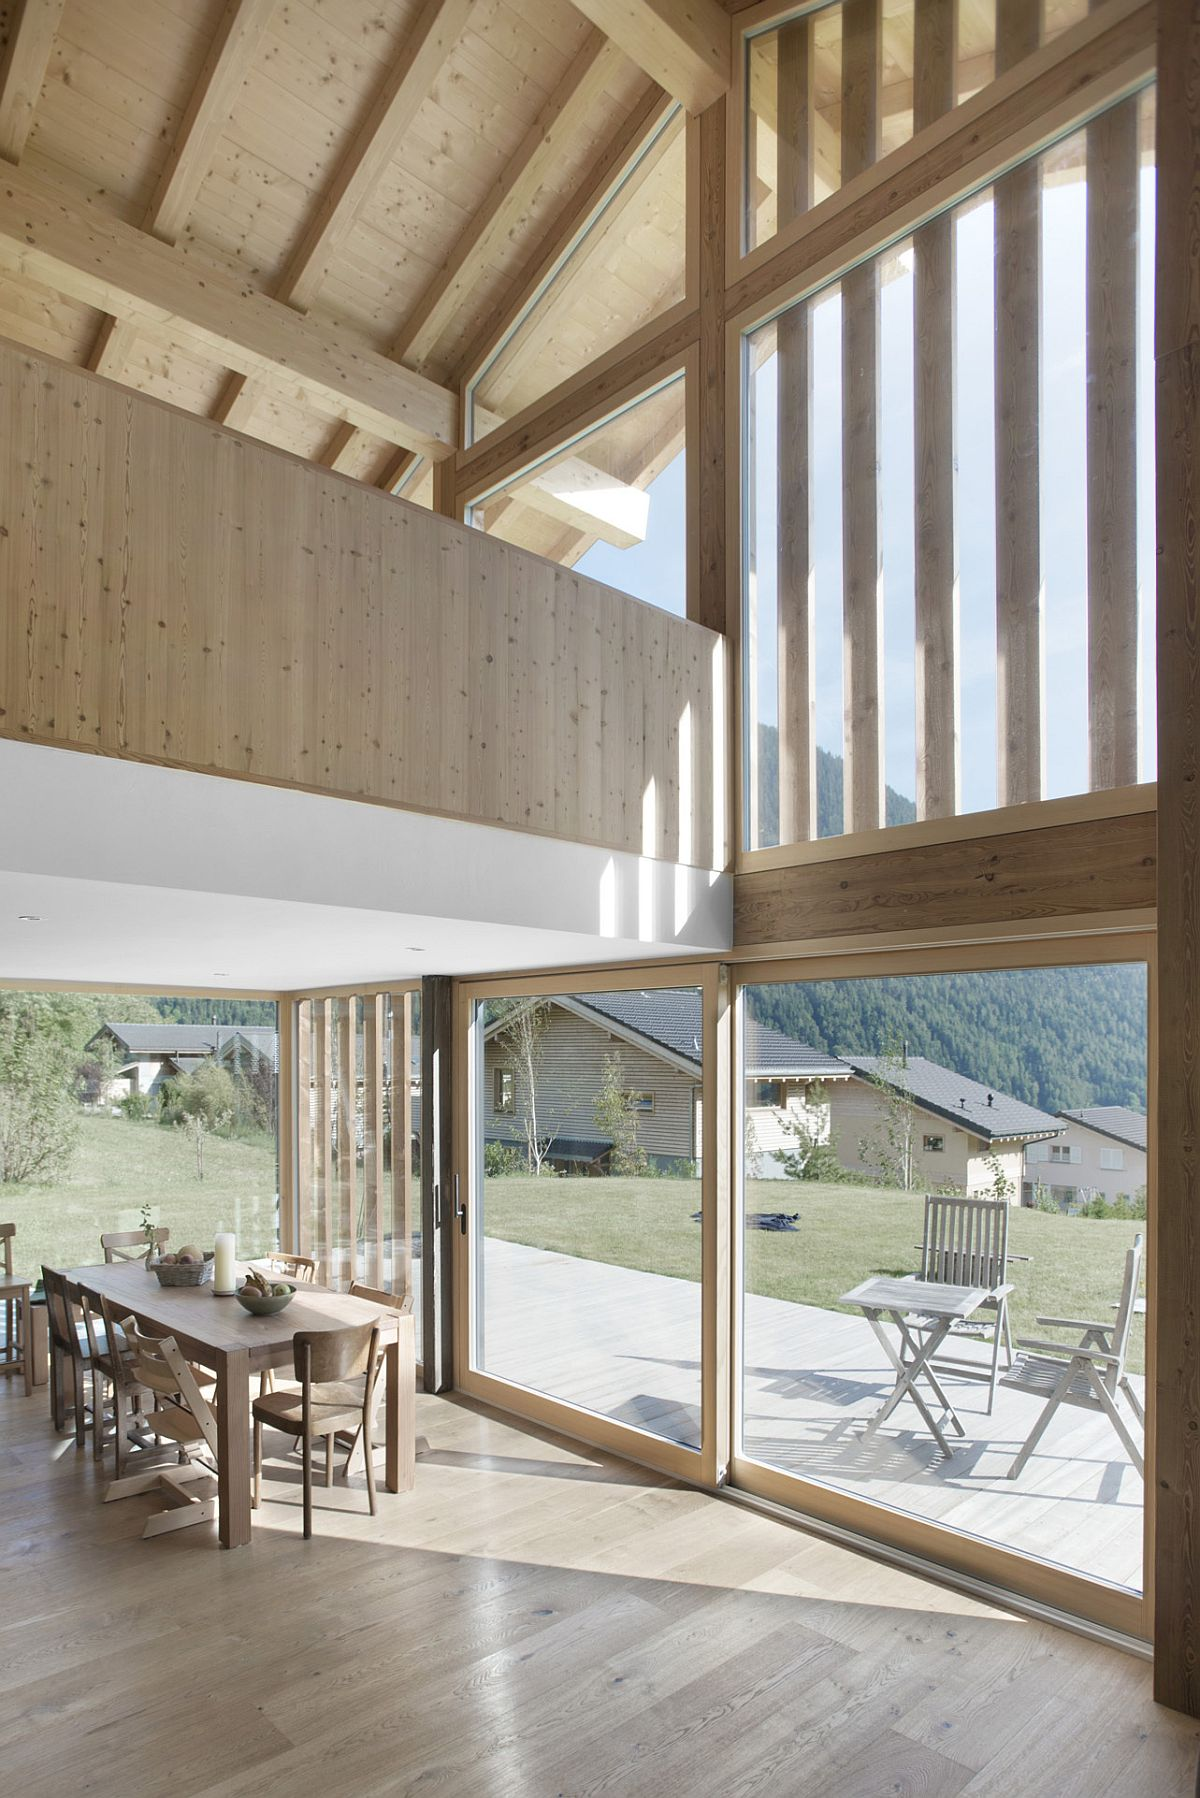 Wood-and-glass-shape-a-lovely-rear-facade-for-the-swiss-home